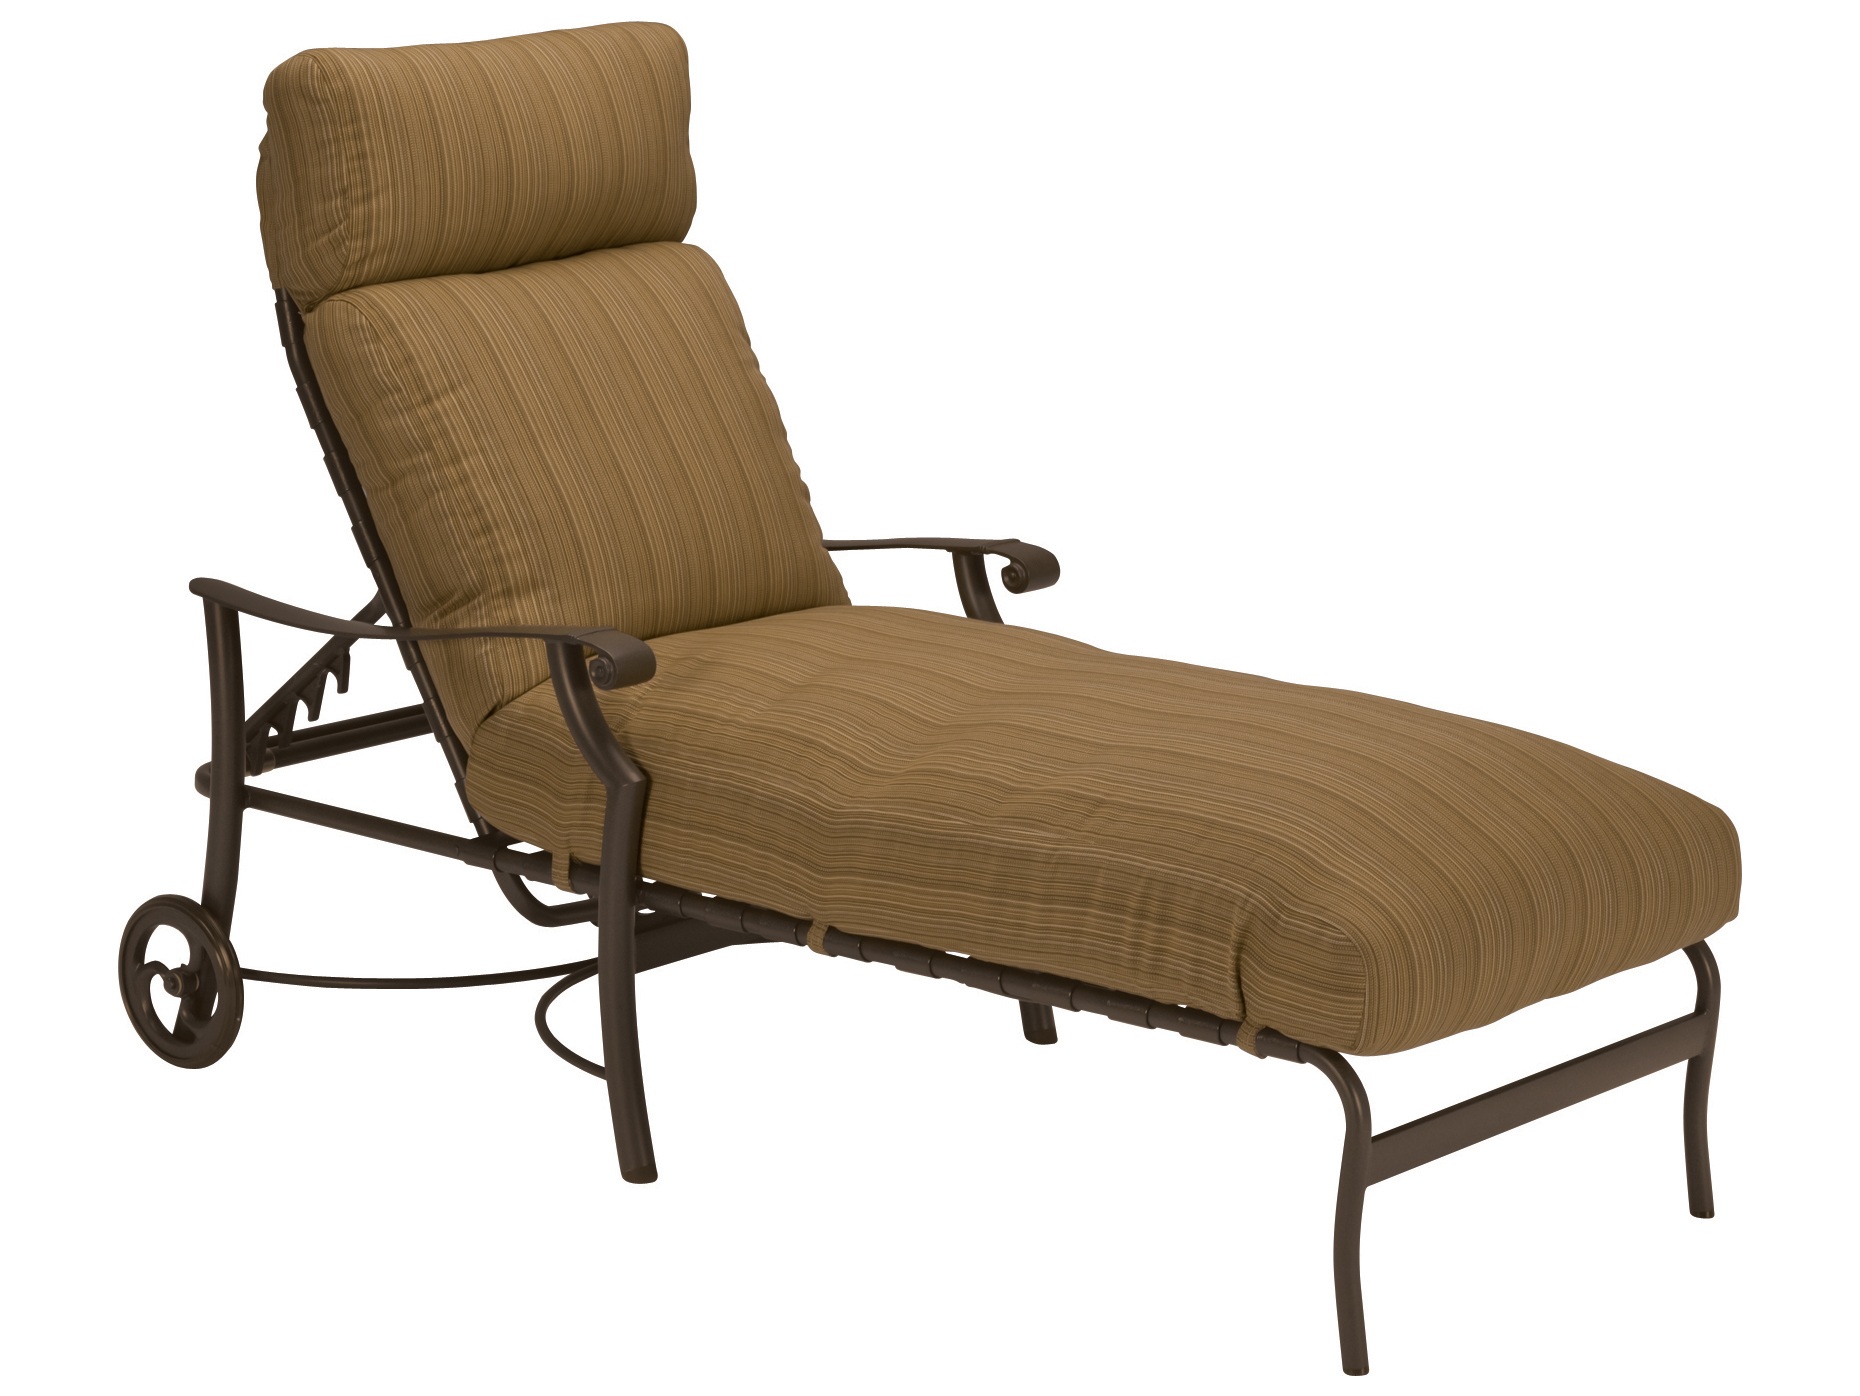 metal lounge chair with wheels covers thunder bay tropitone montreux cushion aluminum chaise